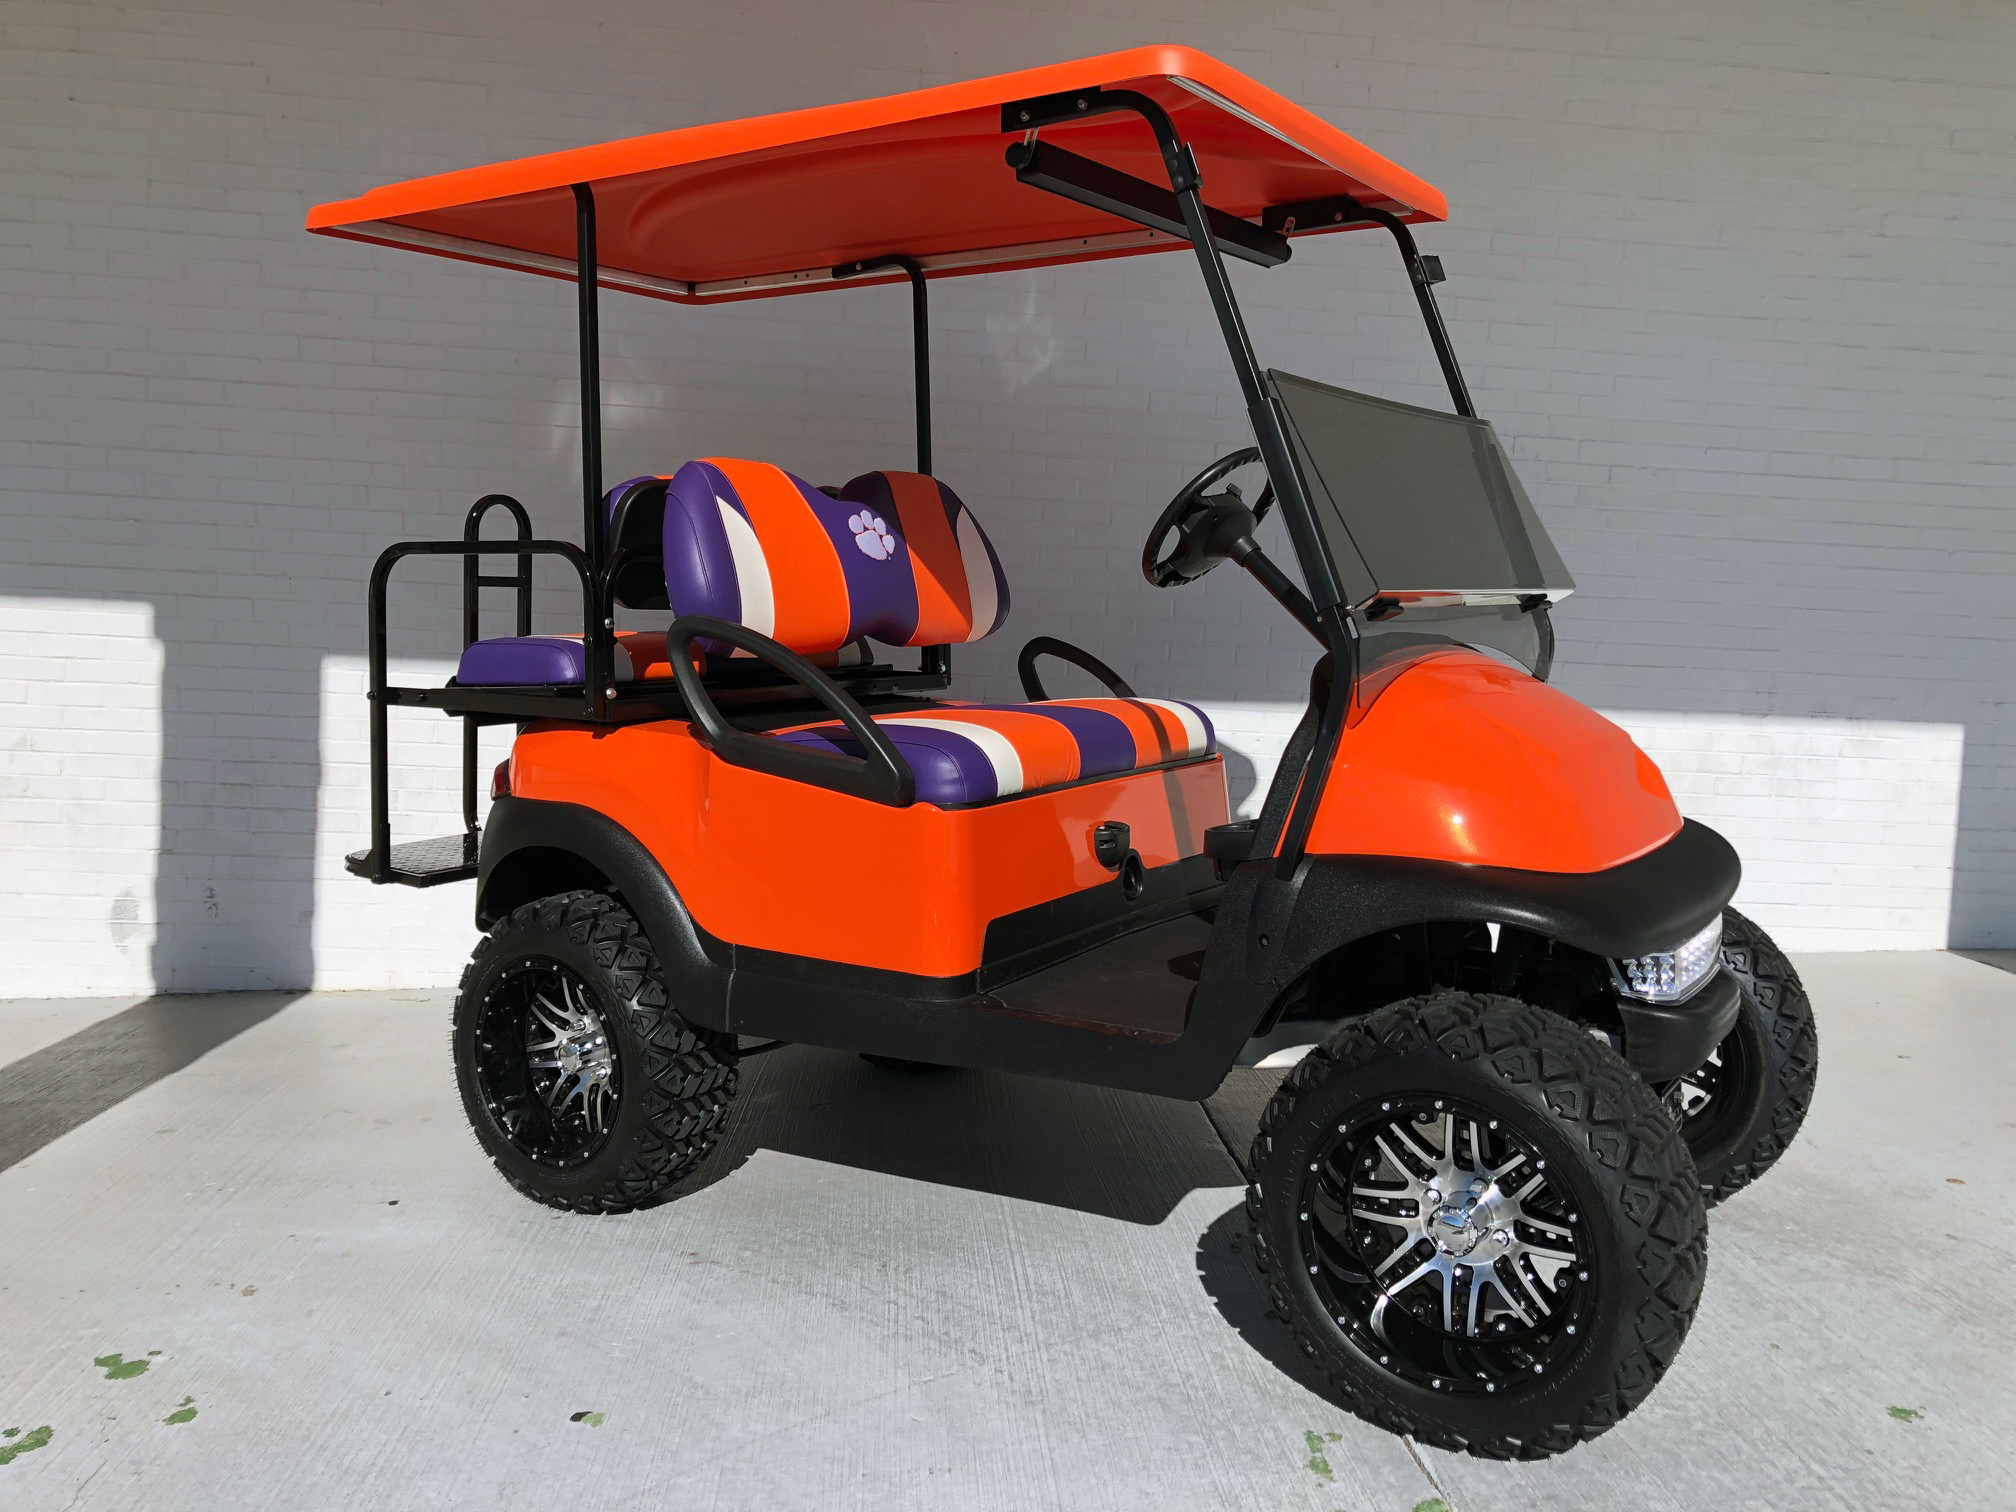 Clemson Tigers Orange Lifted Club Car Golf Cart